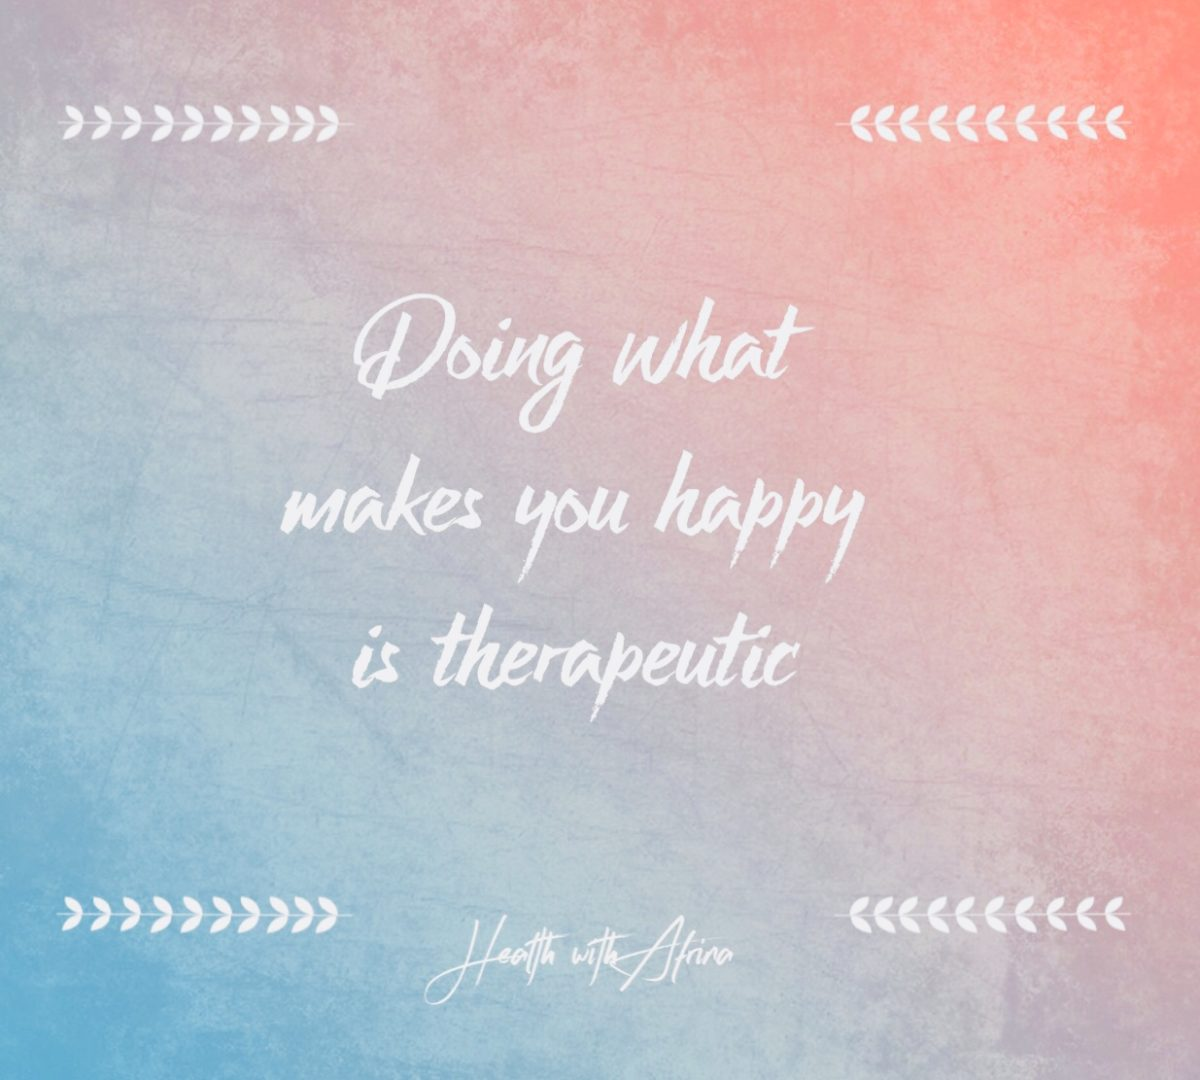 What brings you joy and happiness?